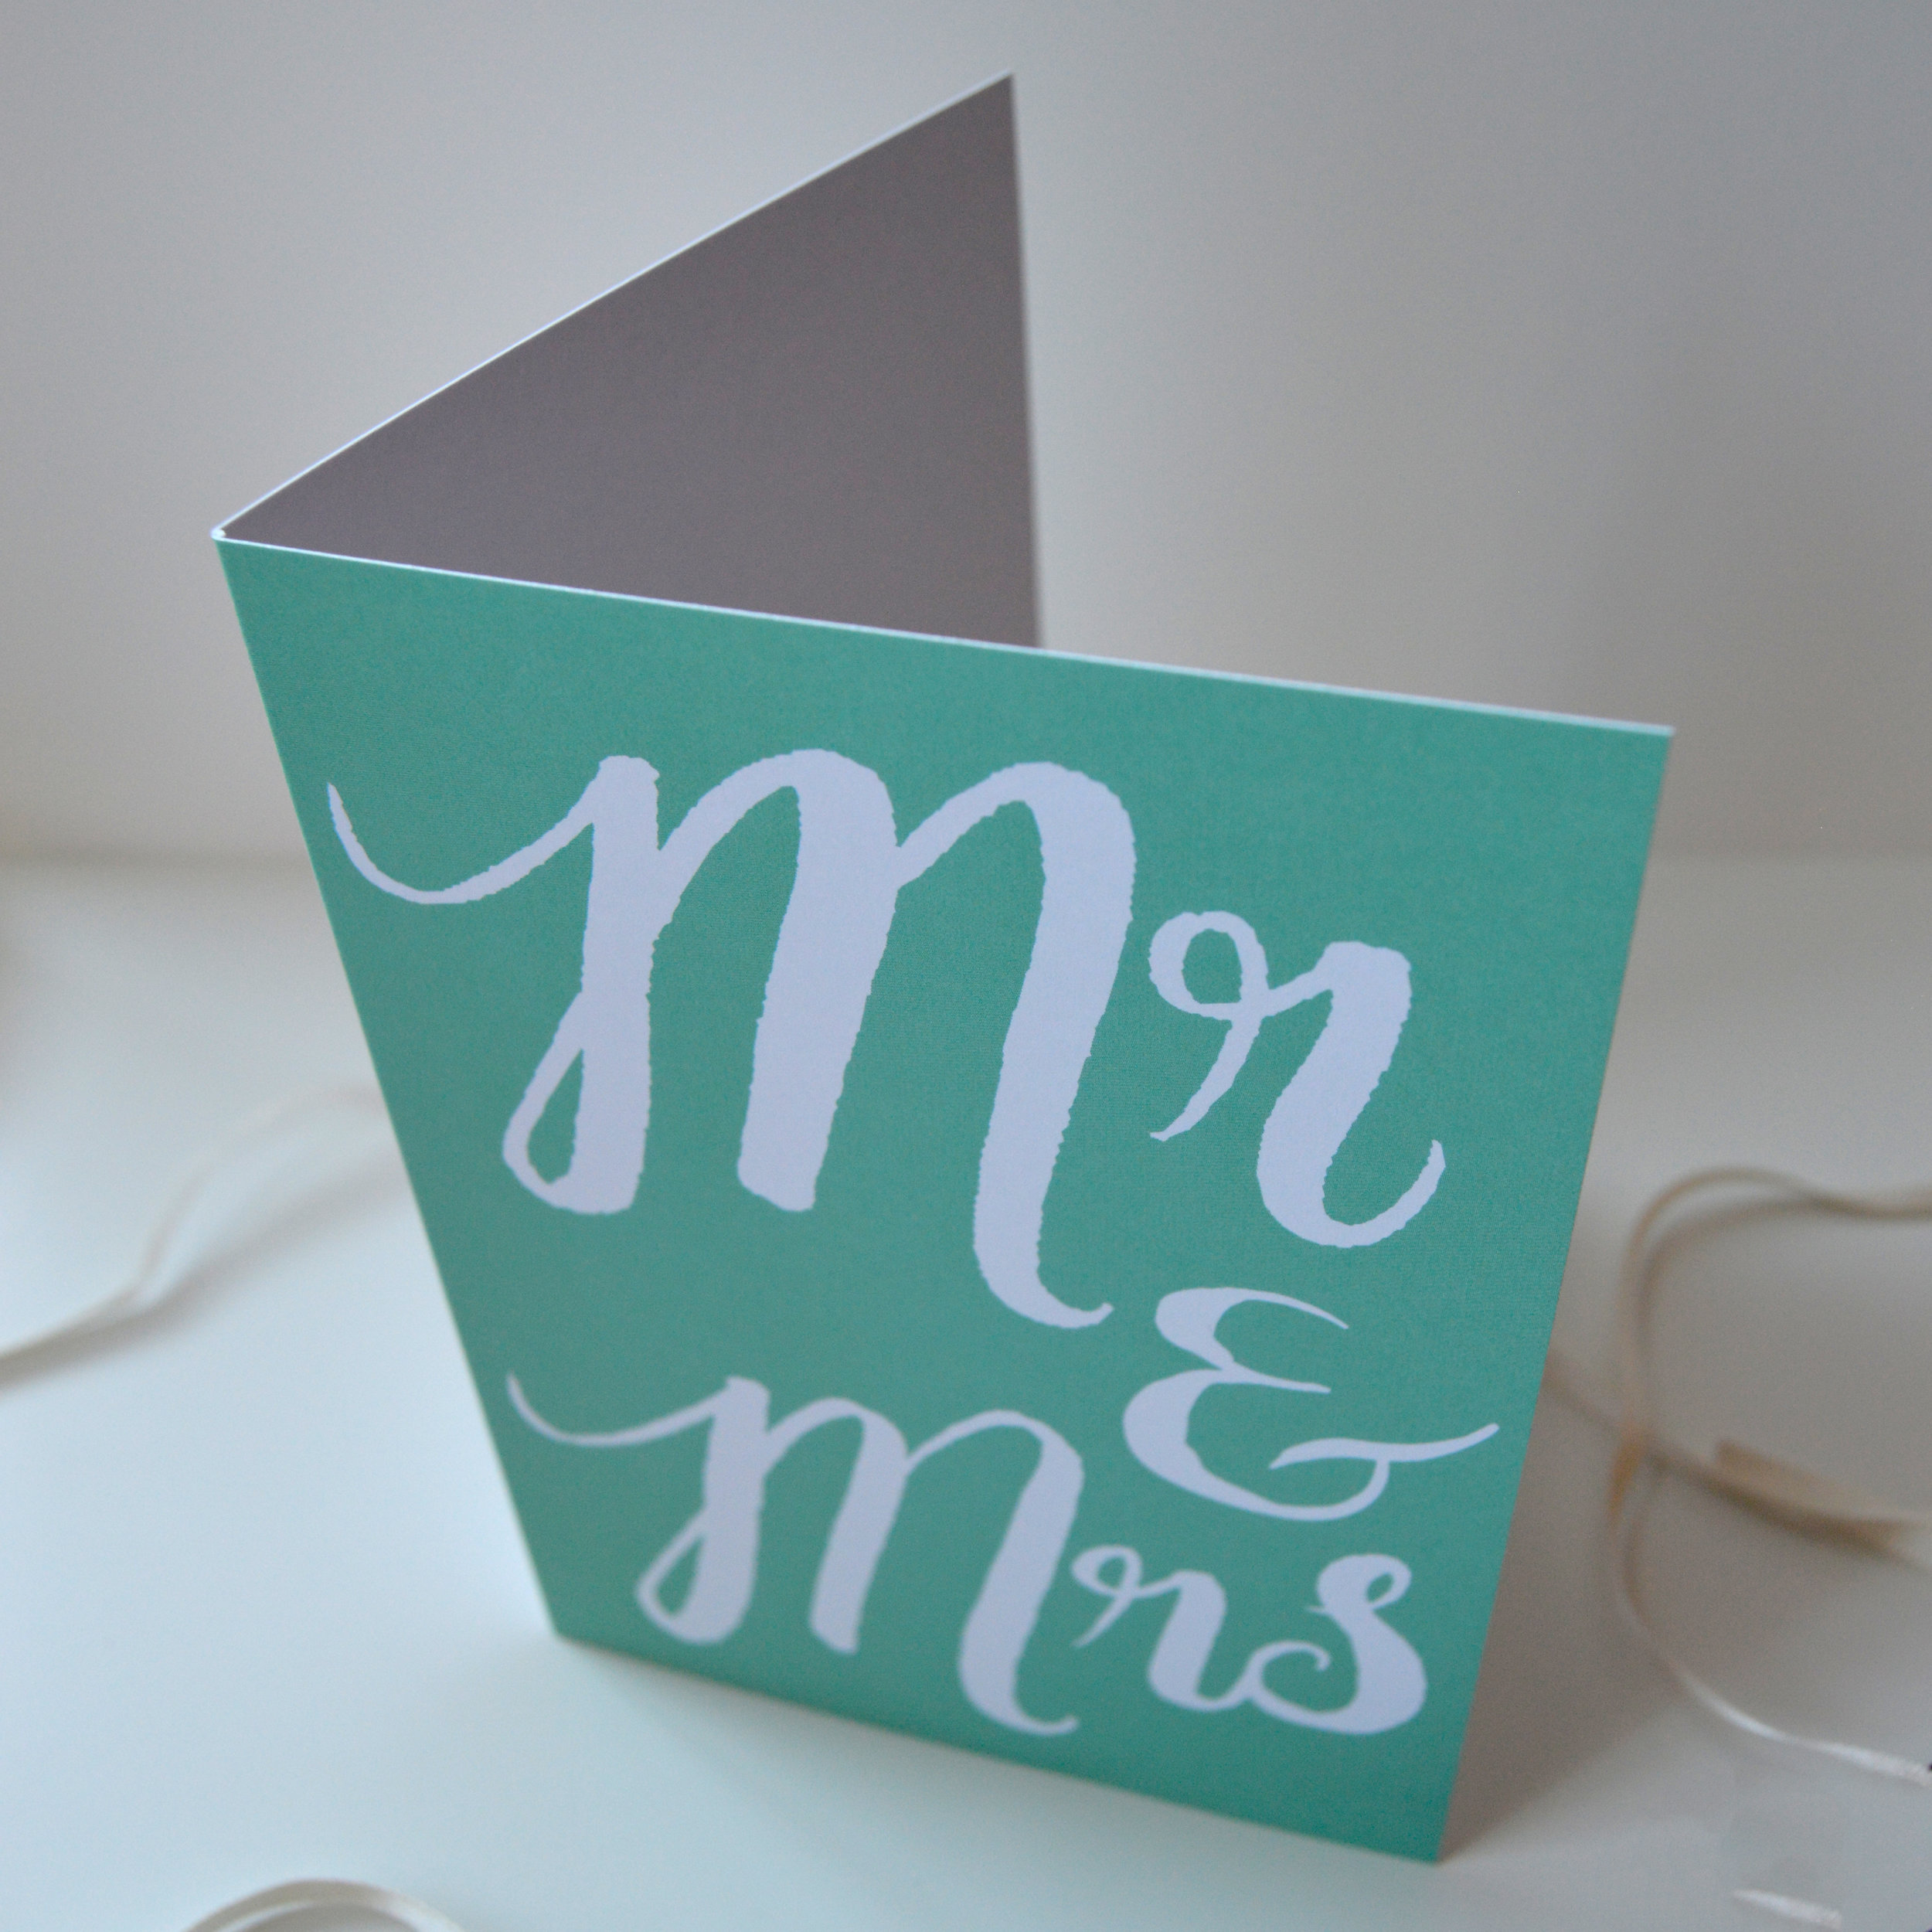 Mr & Mrs wedding card , blank inside for your own special message. Celebrate in style with this illustrated greetings card! Perfect for occasions such as weddings, anniversaries and engagements!